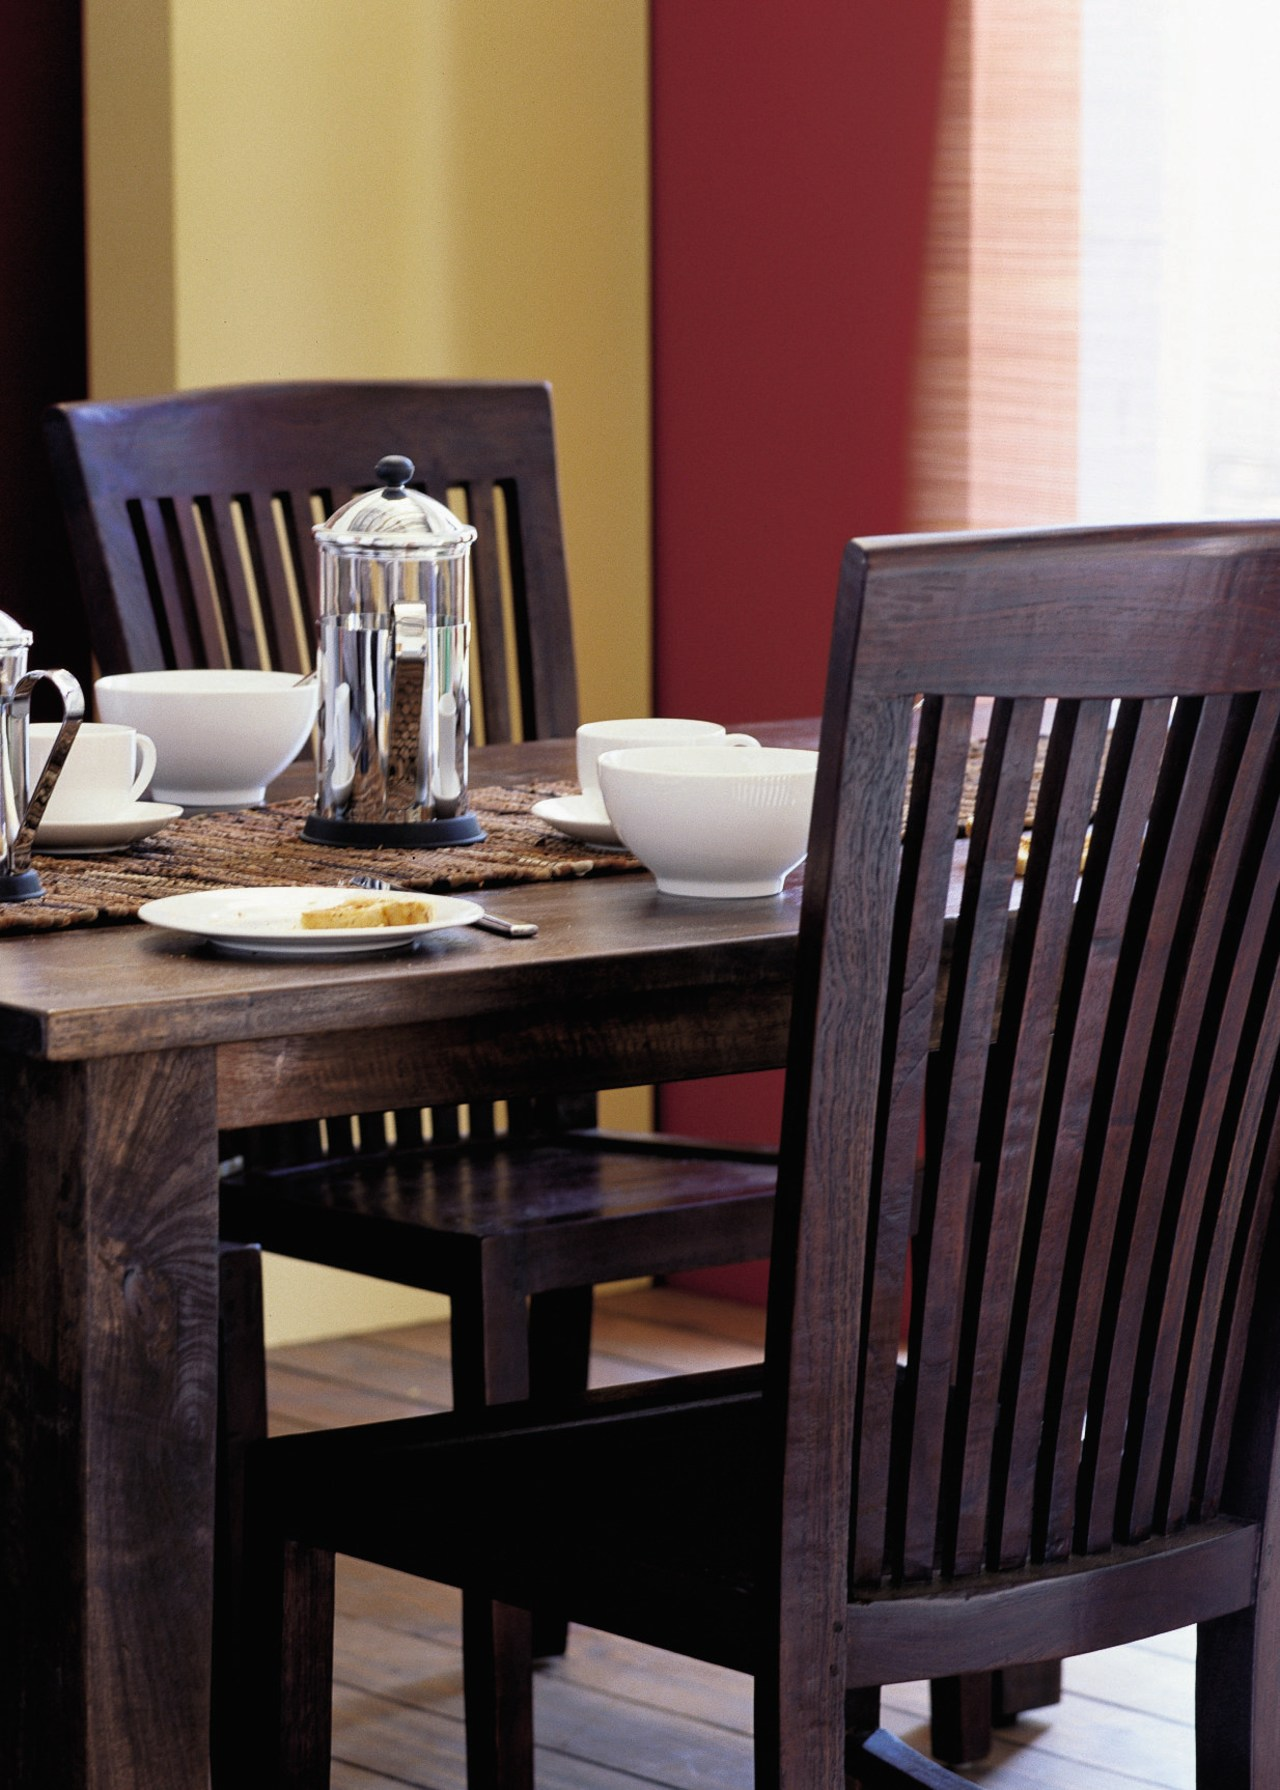 View of the dining furniture chair, dining room, furniture, home, table, wood, black